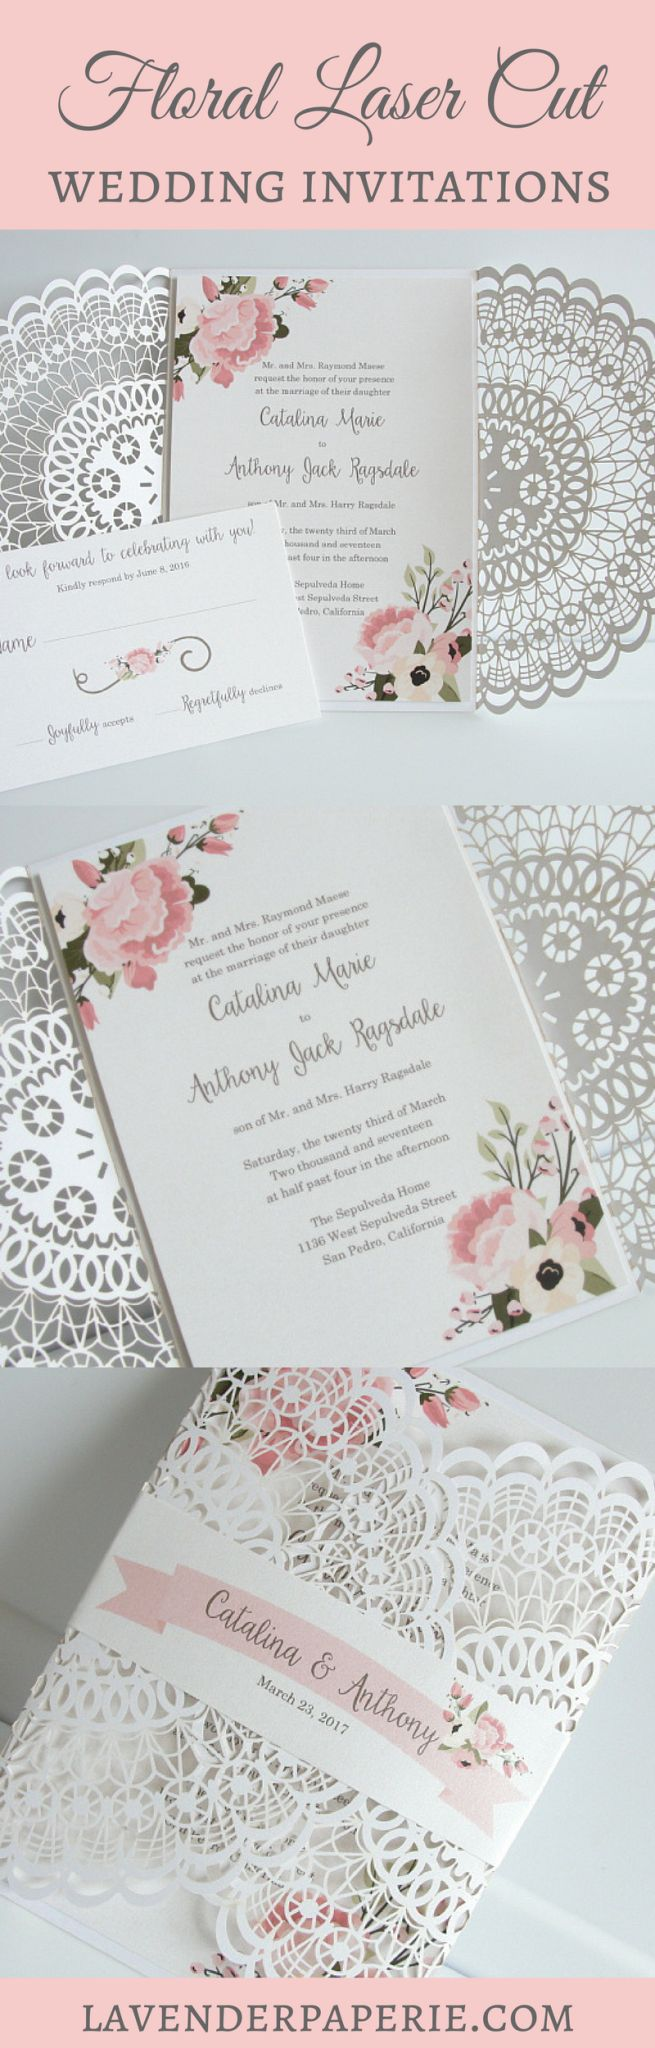 summer fete wedding invitations%0A Floral Laser Cut Wedding Invitations by Lavender Paperie